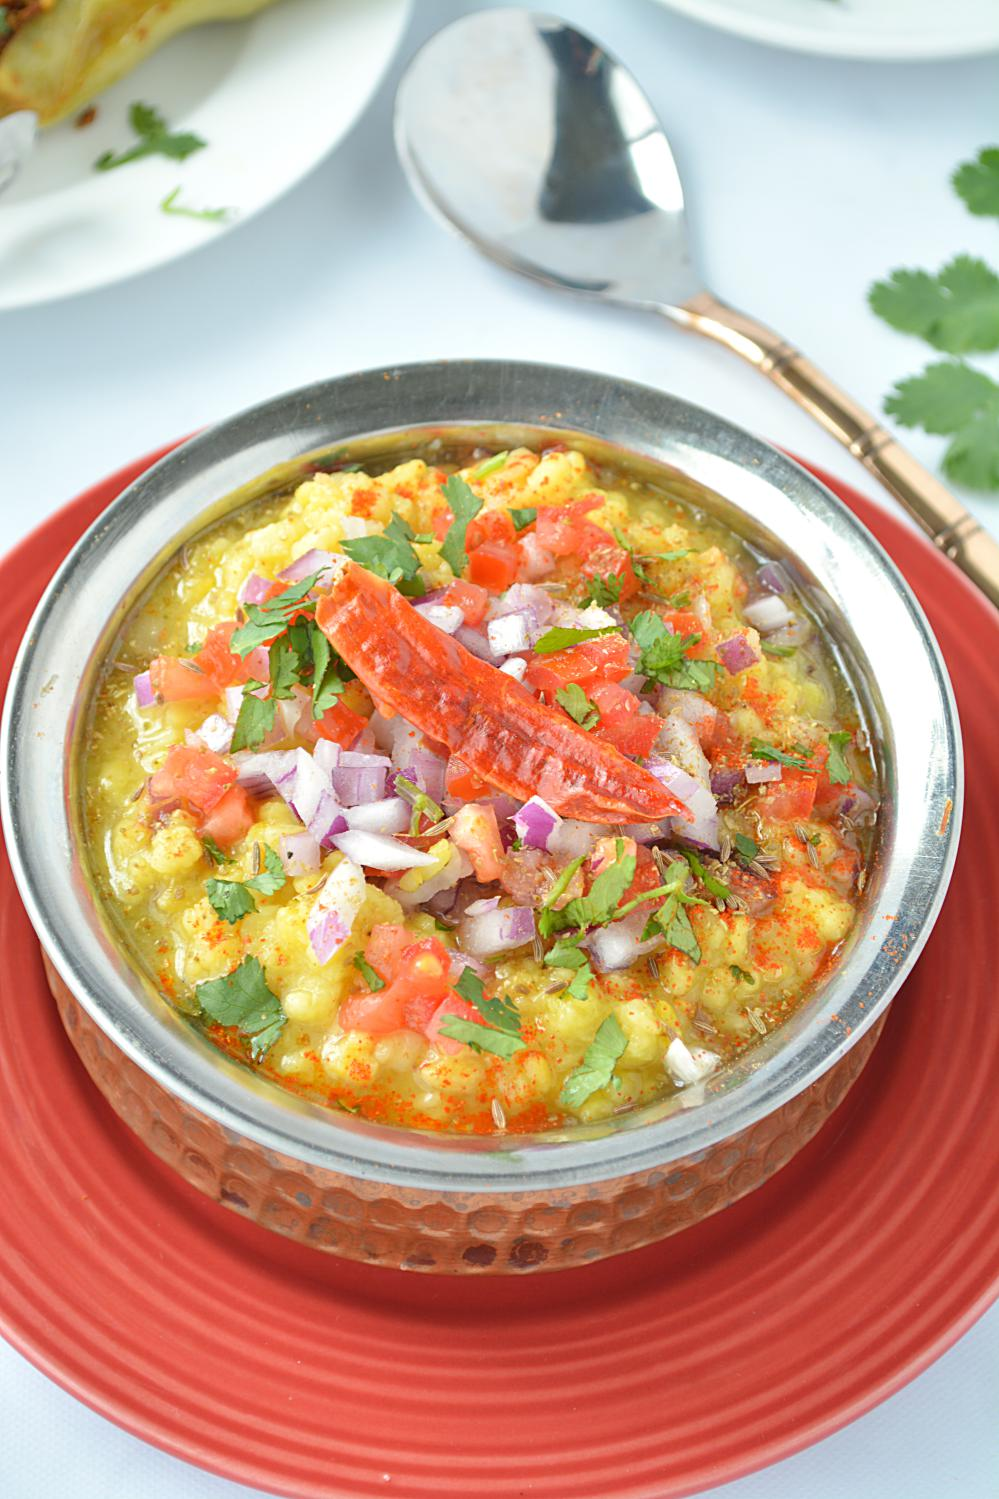 khadi-moong-dal-recipe-1